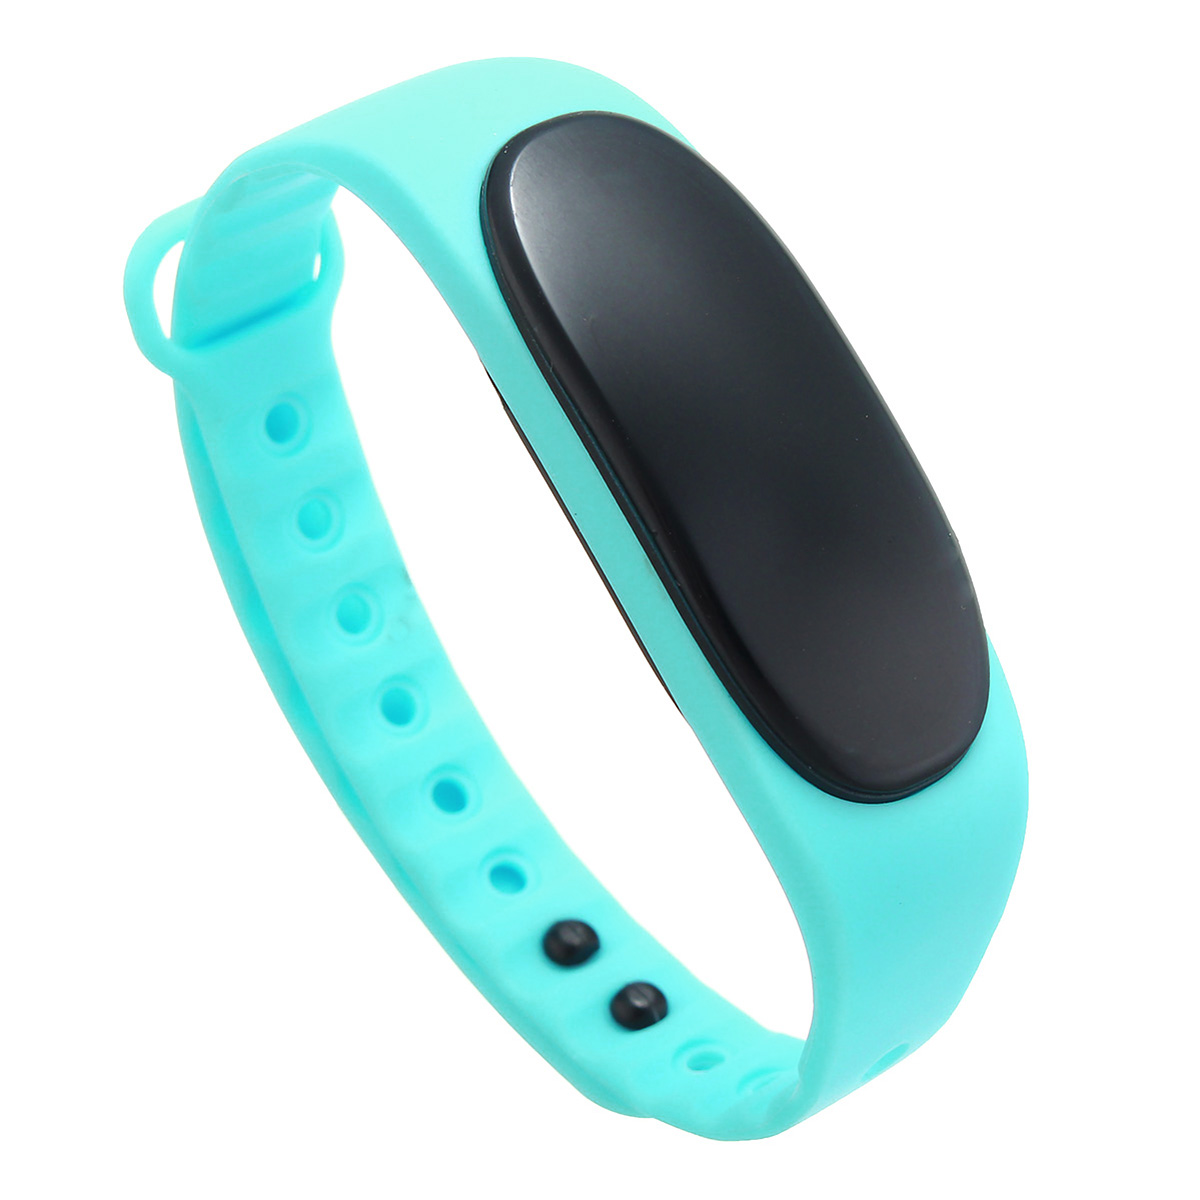 T02 bluetooth 4.0 Smart Wristband Bracelet IP65 Waterproof Smart Watch Pedometer for Android IOS